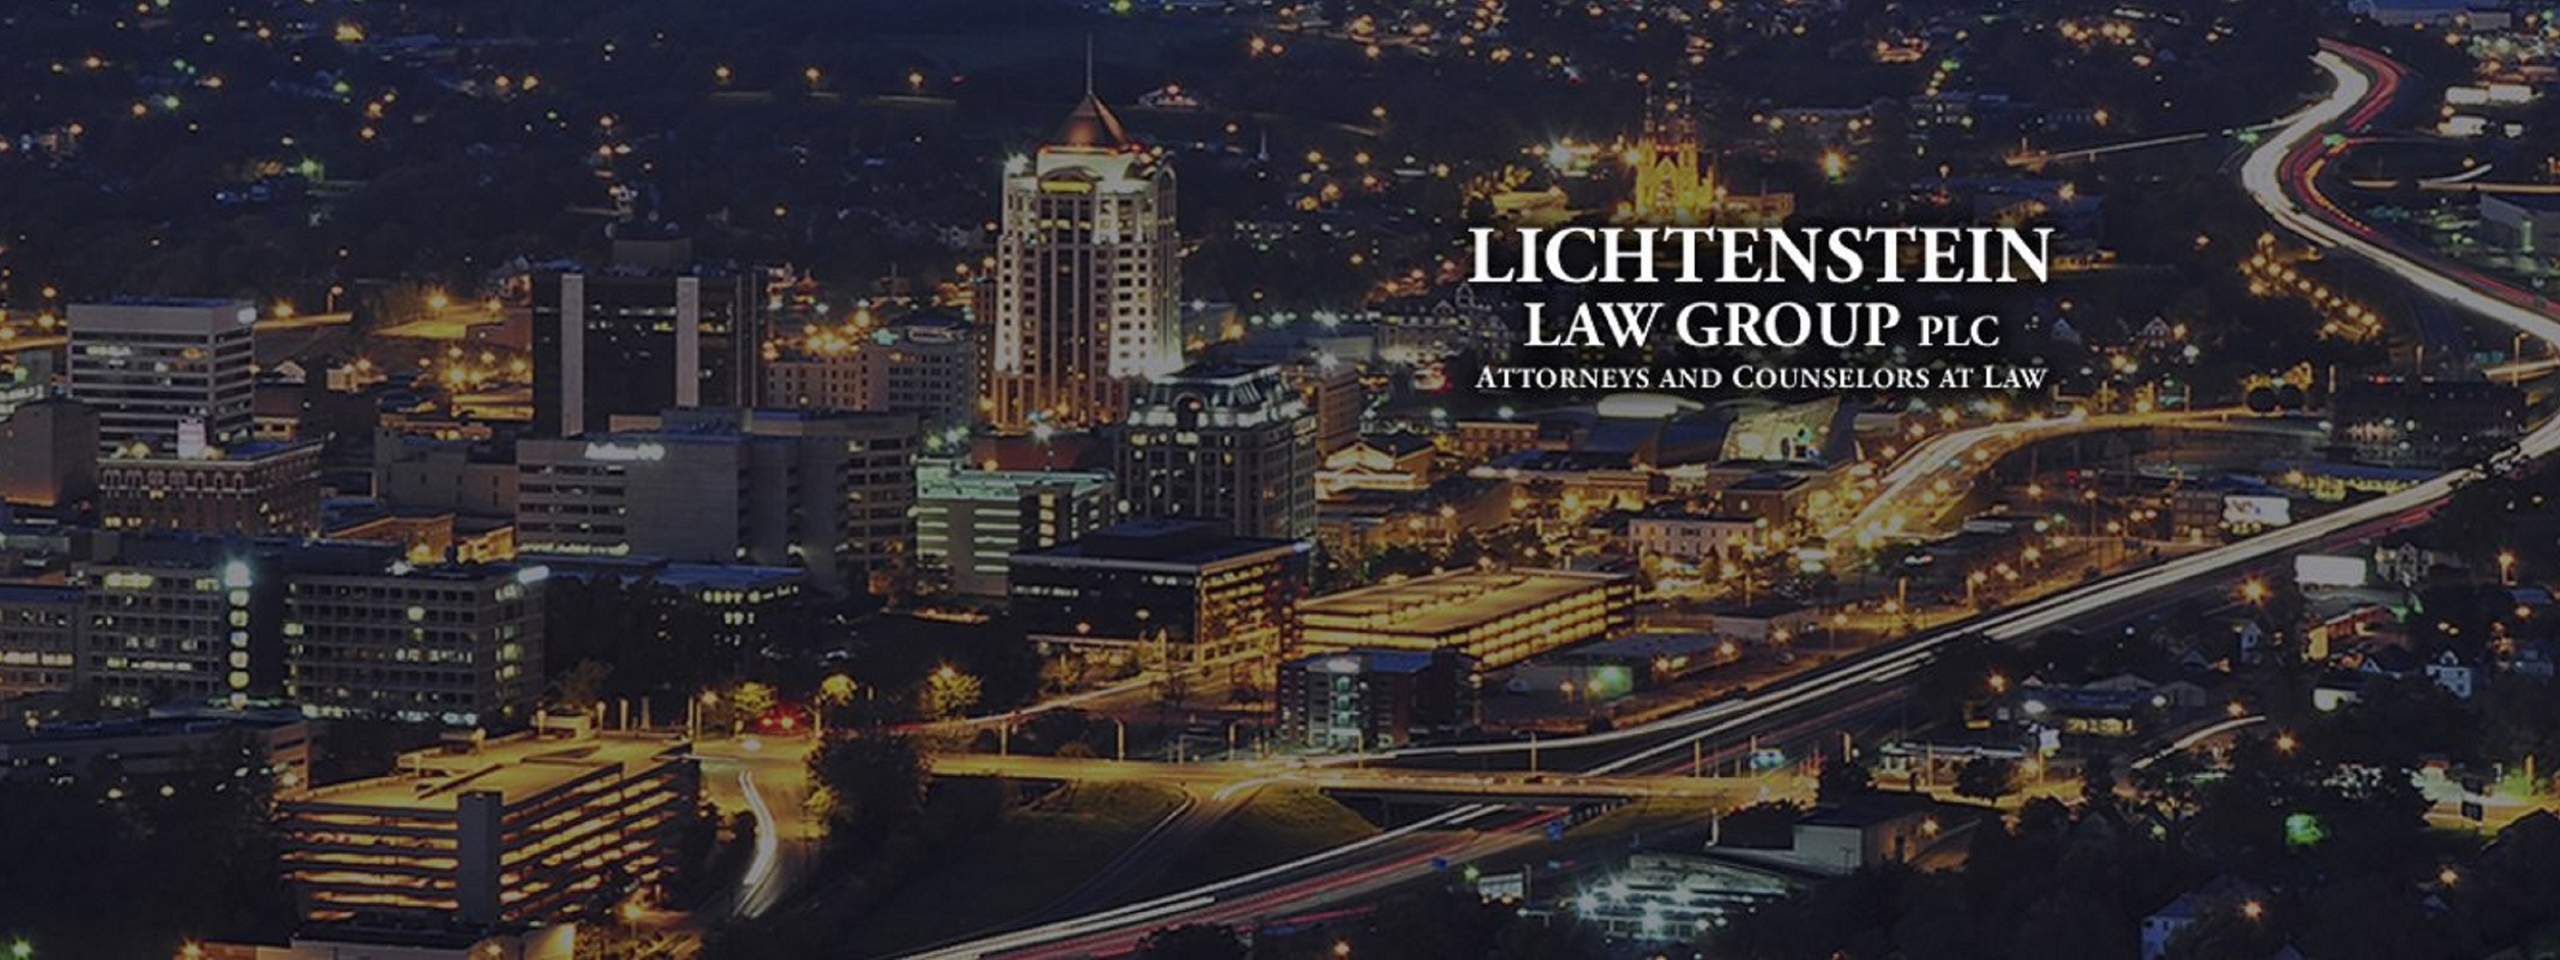 Lichtenstein Law Group PLC (@lichtensteinlawgroup) Cover Image